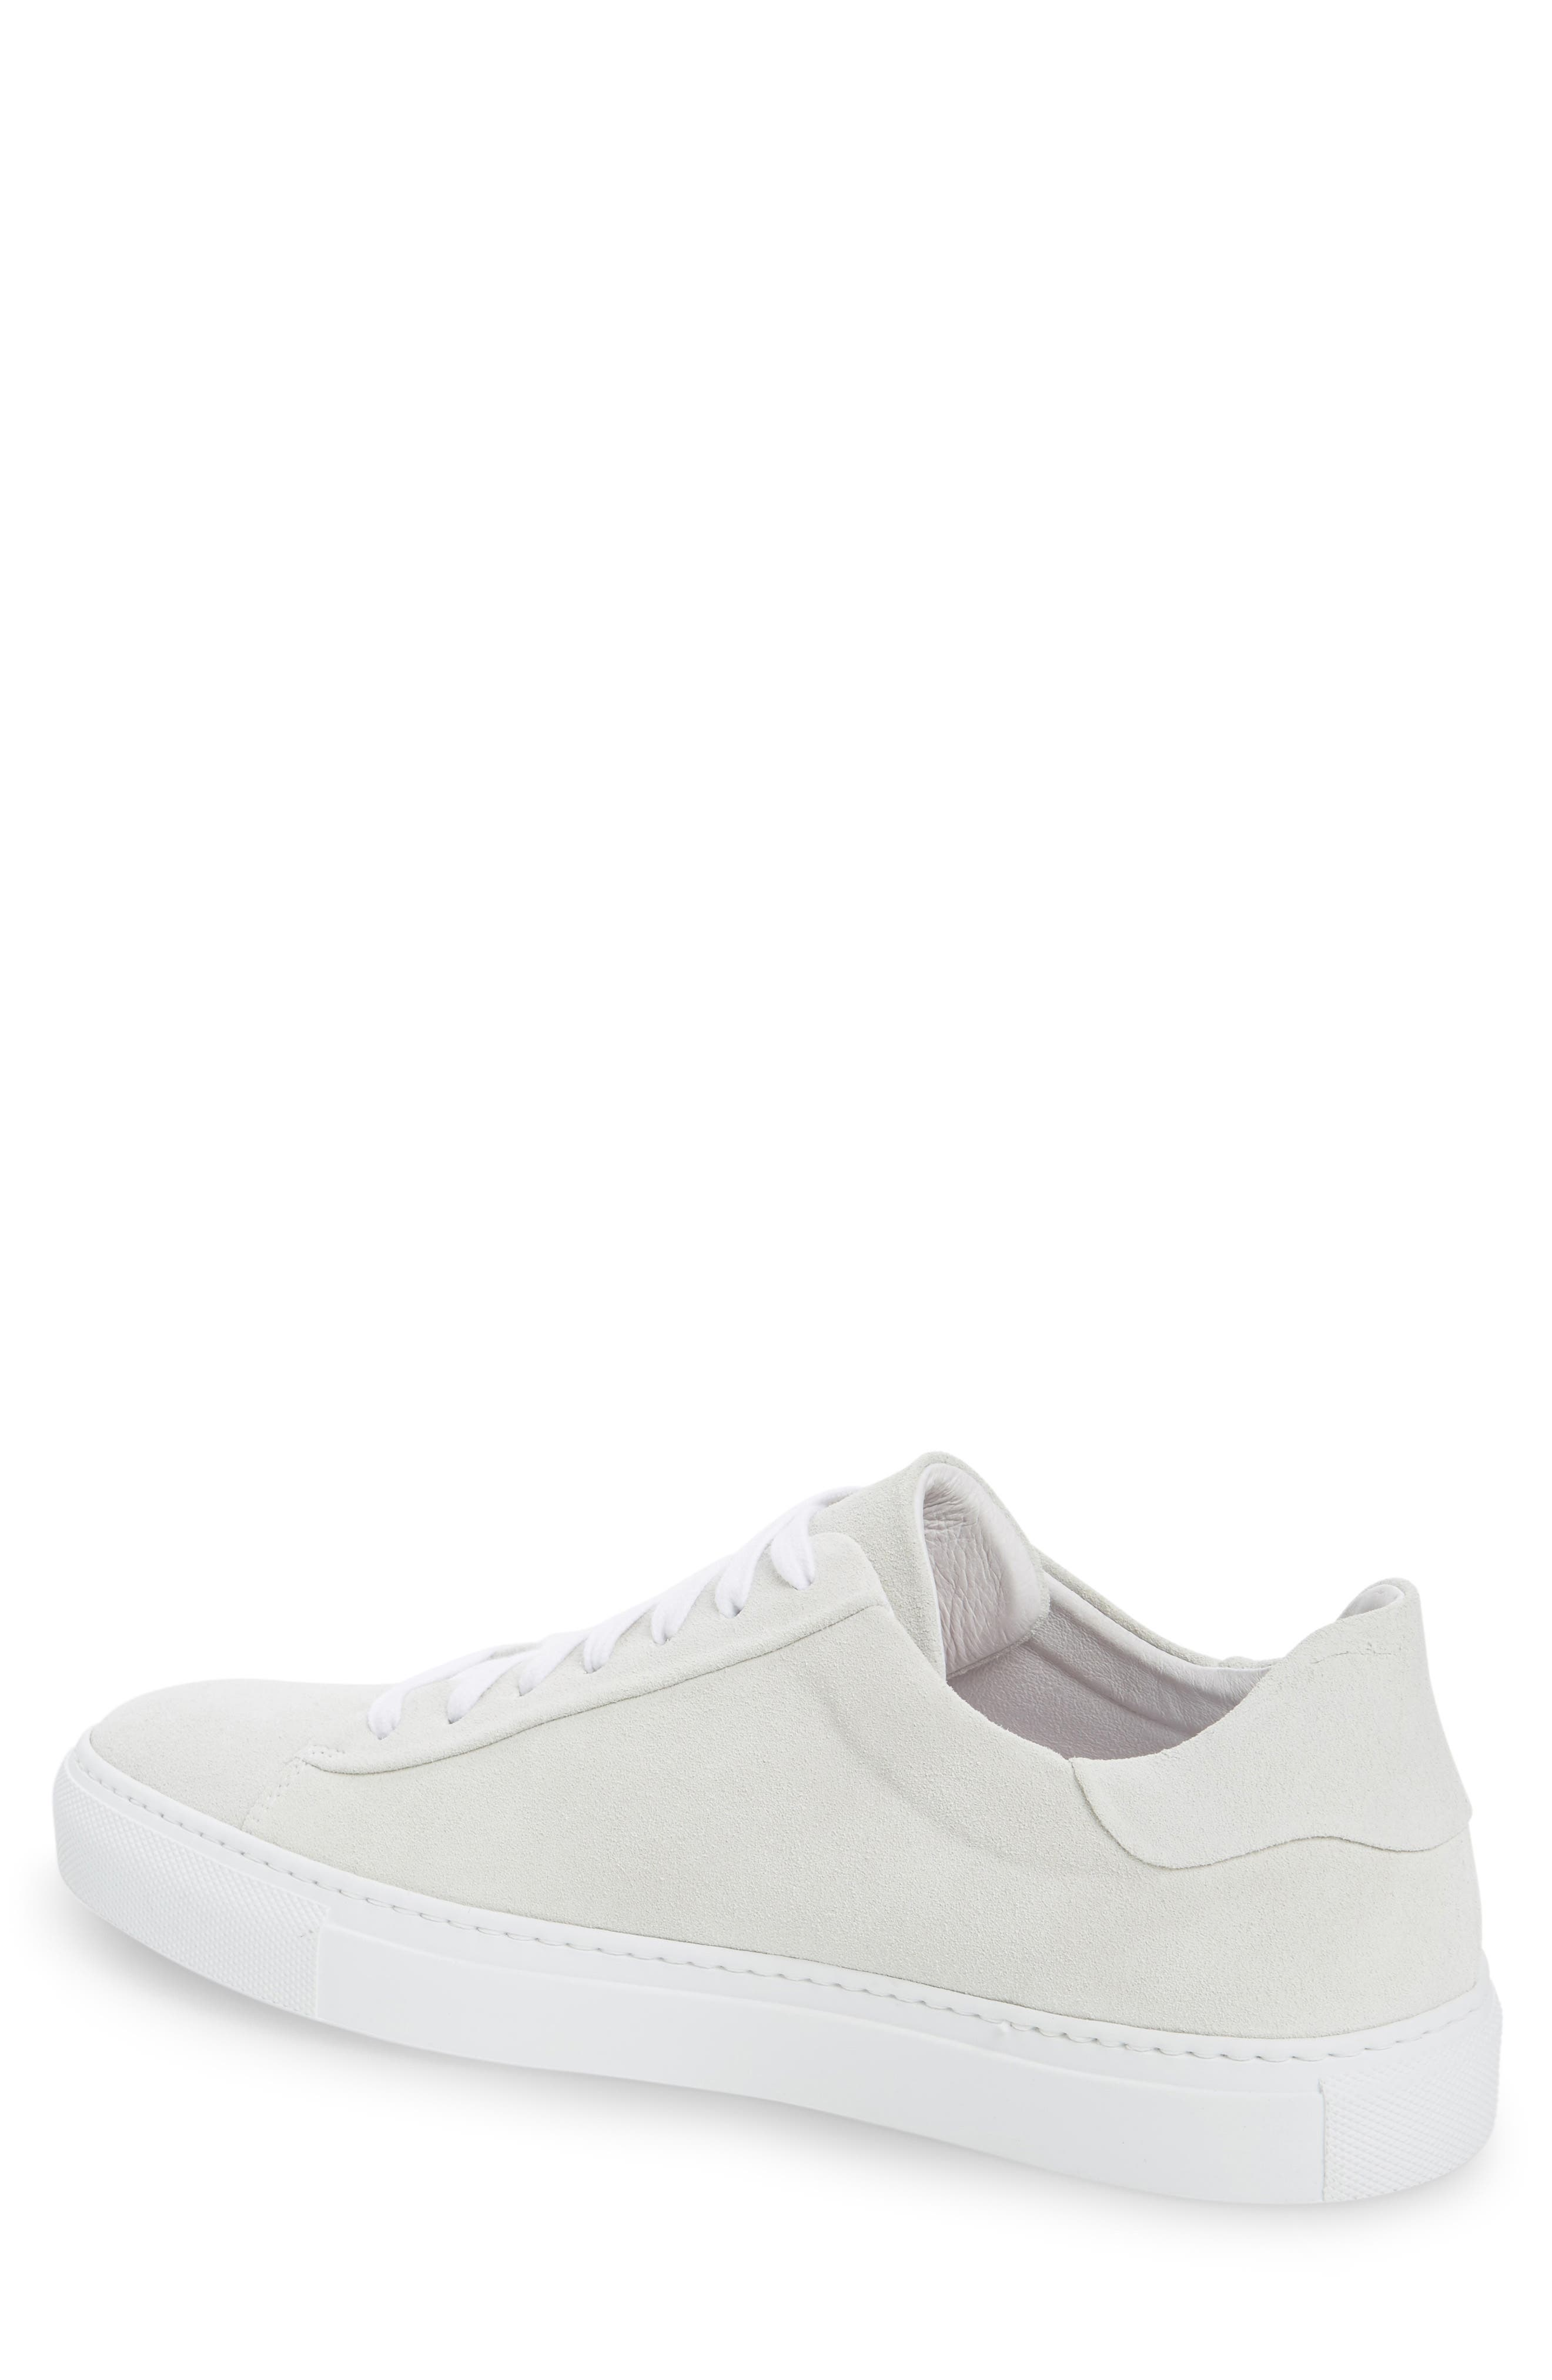 Court Sneaker,                             Alternate thumbnail 2, color,                             White Suede